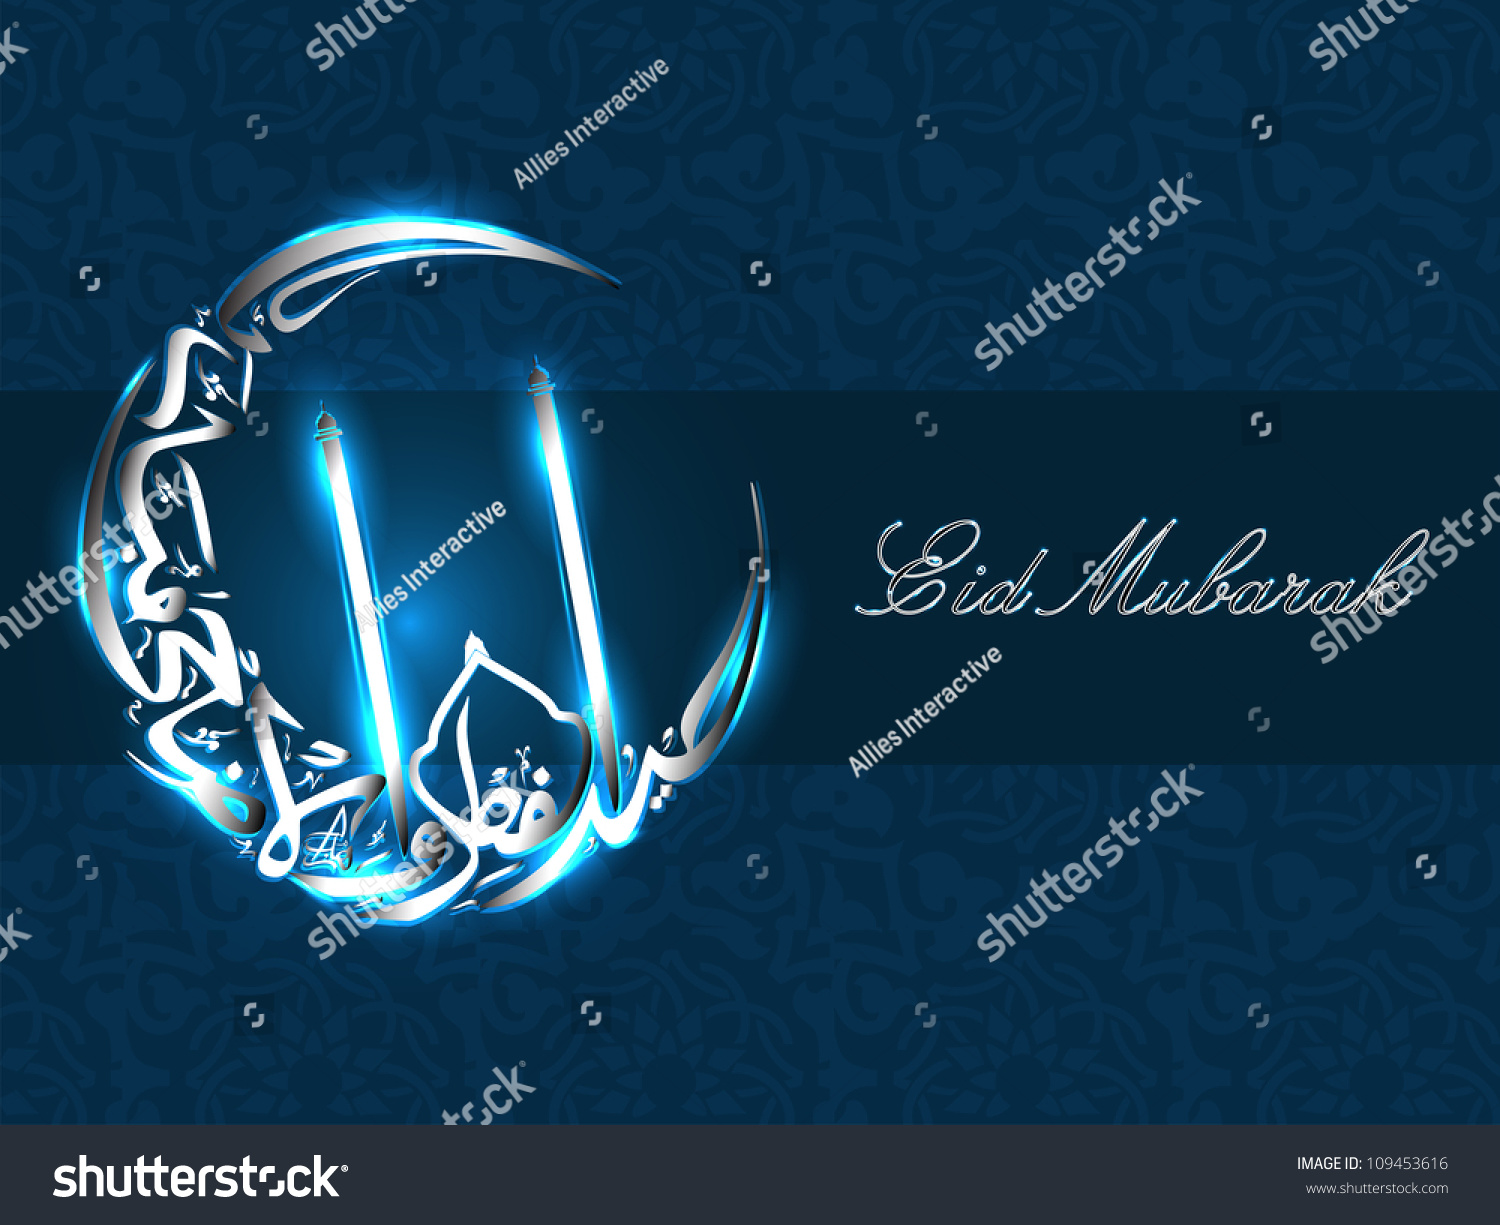 Greeting card arabic islamic calligraphy text stock vector greeting card with arabic islamic calligraphy of text eid mubarak in shiny silver color on blue kristyandbryce Image collections